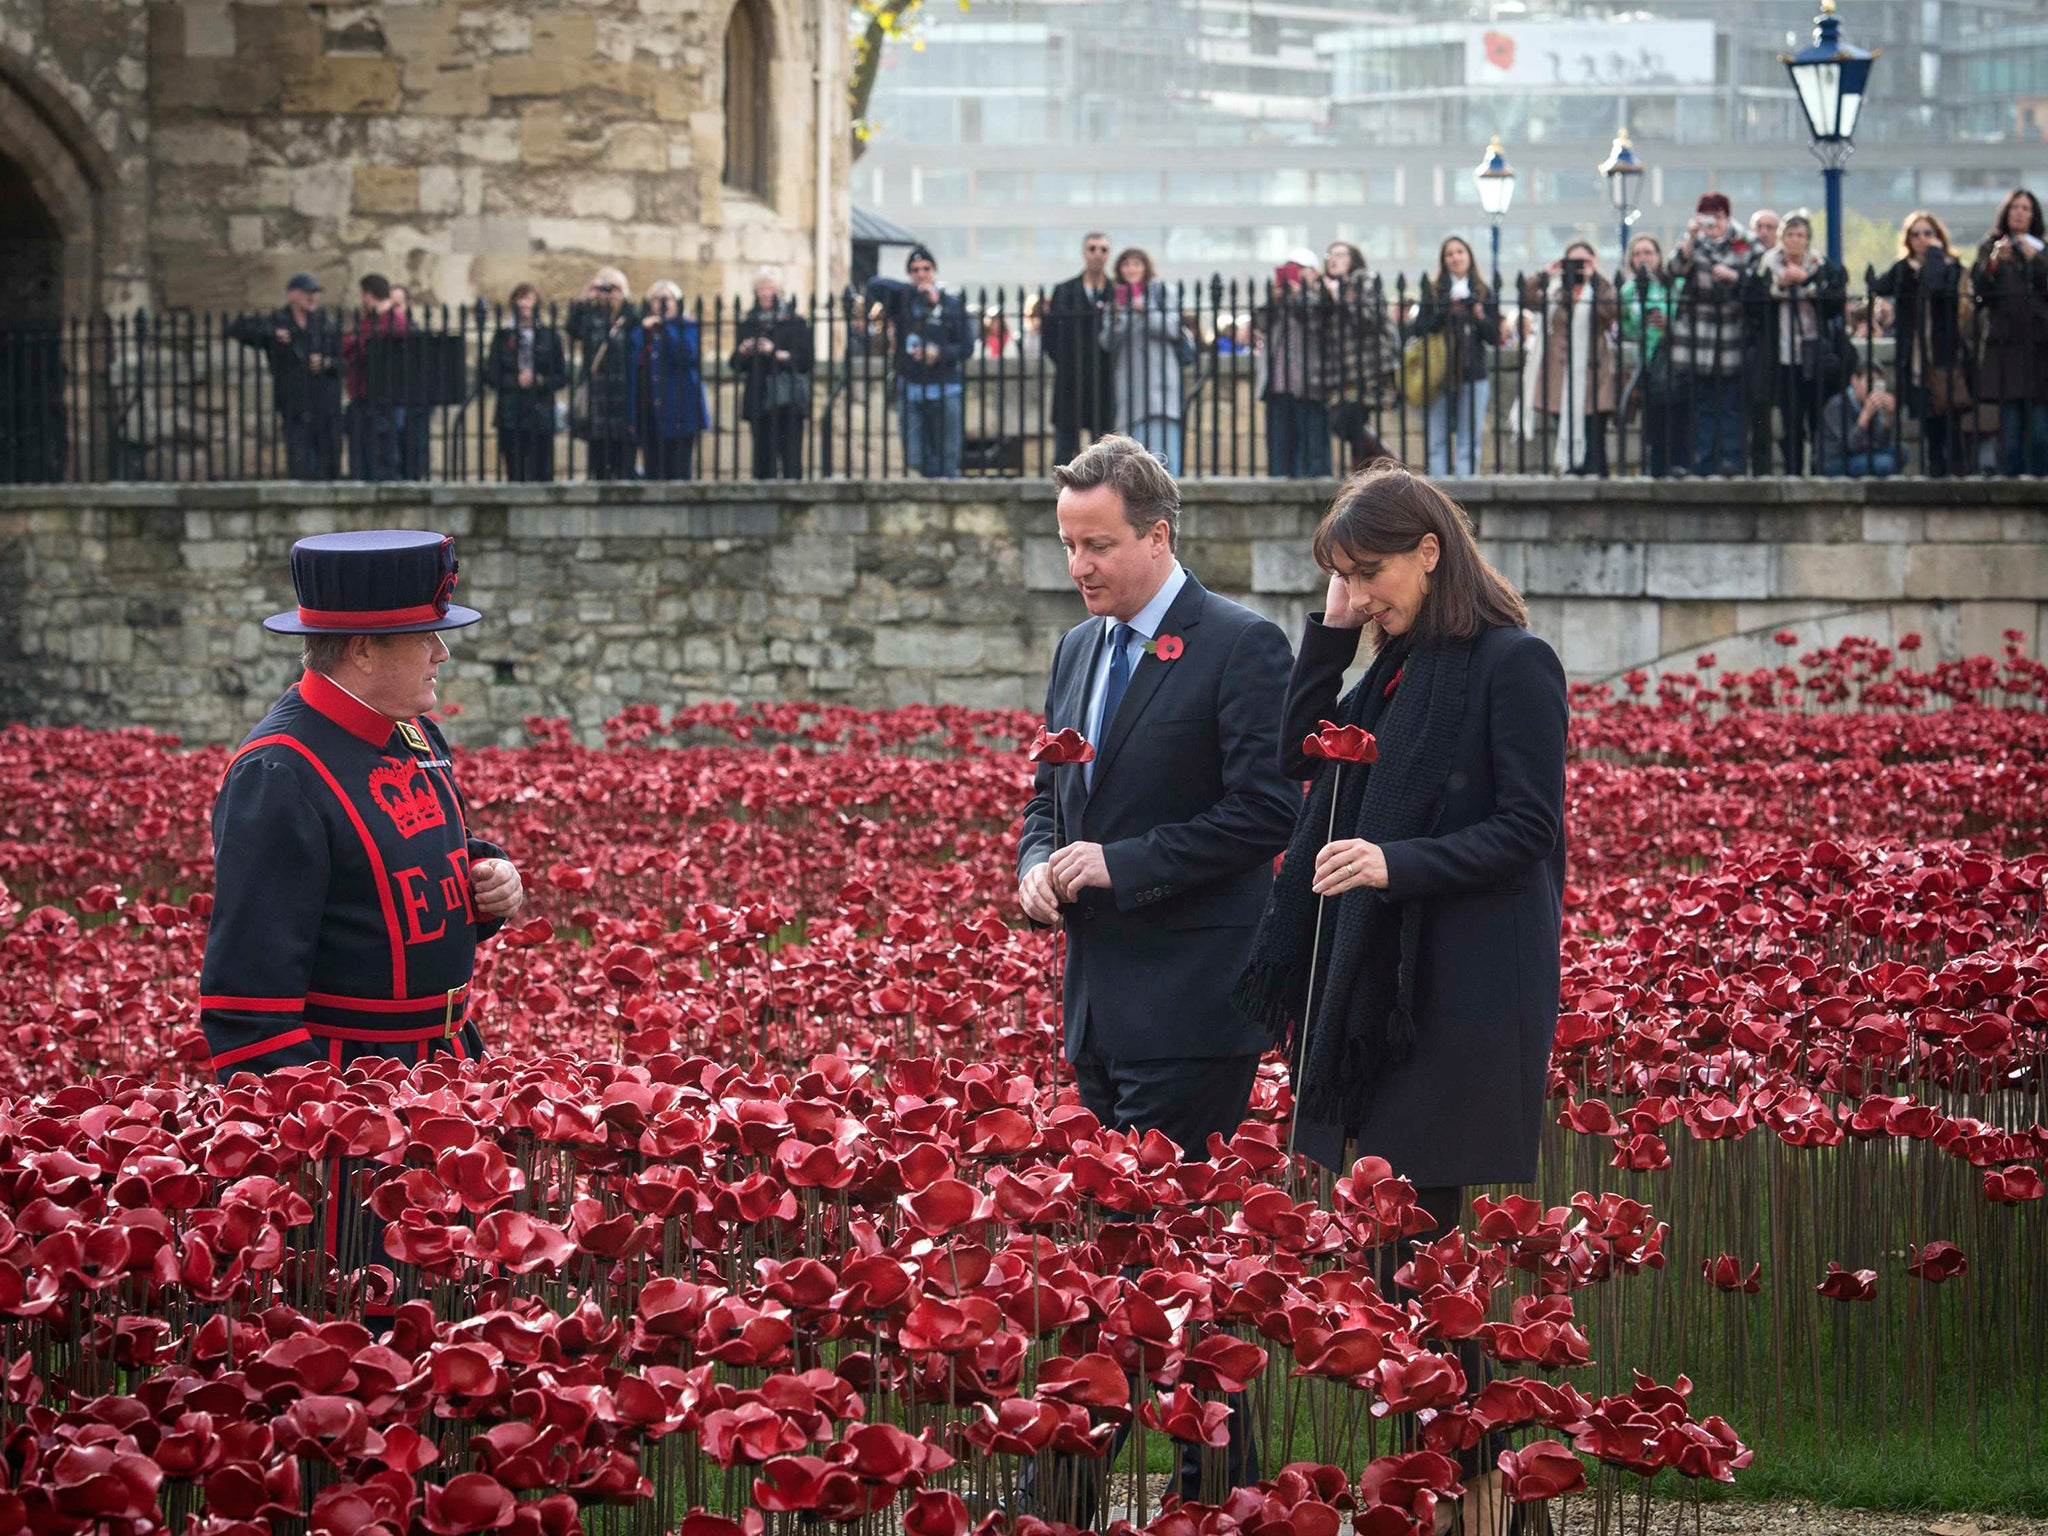 The Poppy Has Become A Symbol Of Racism I Will Never Wear One